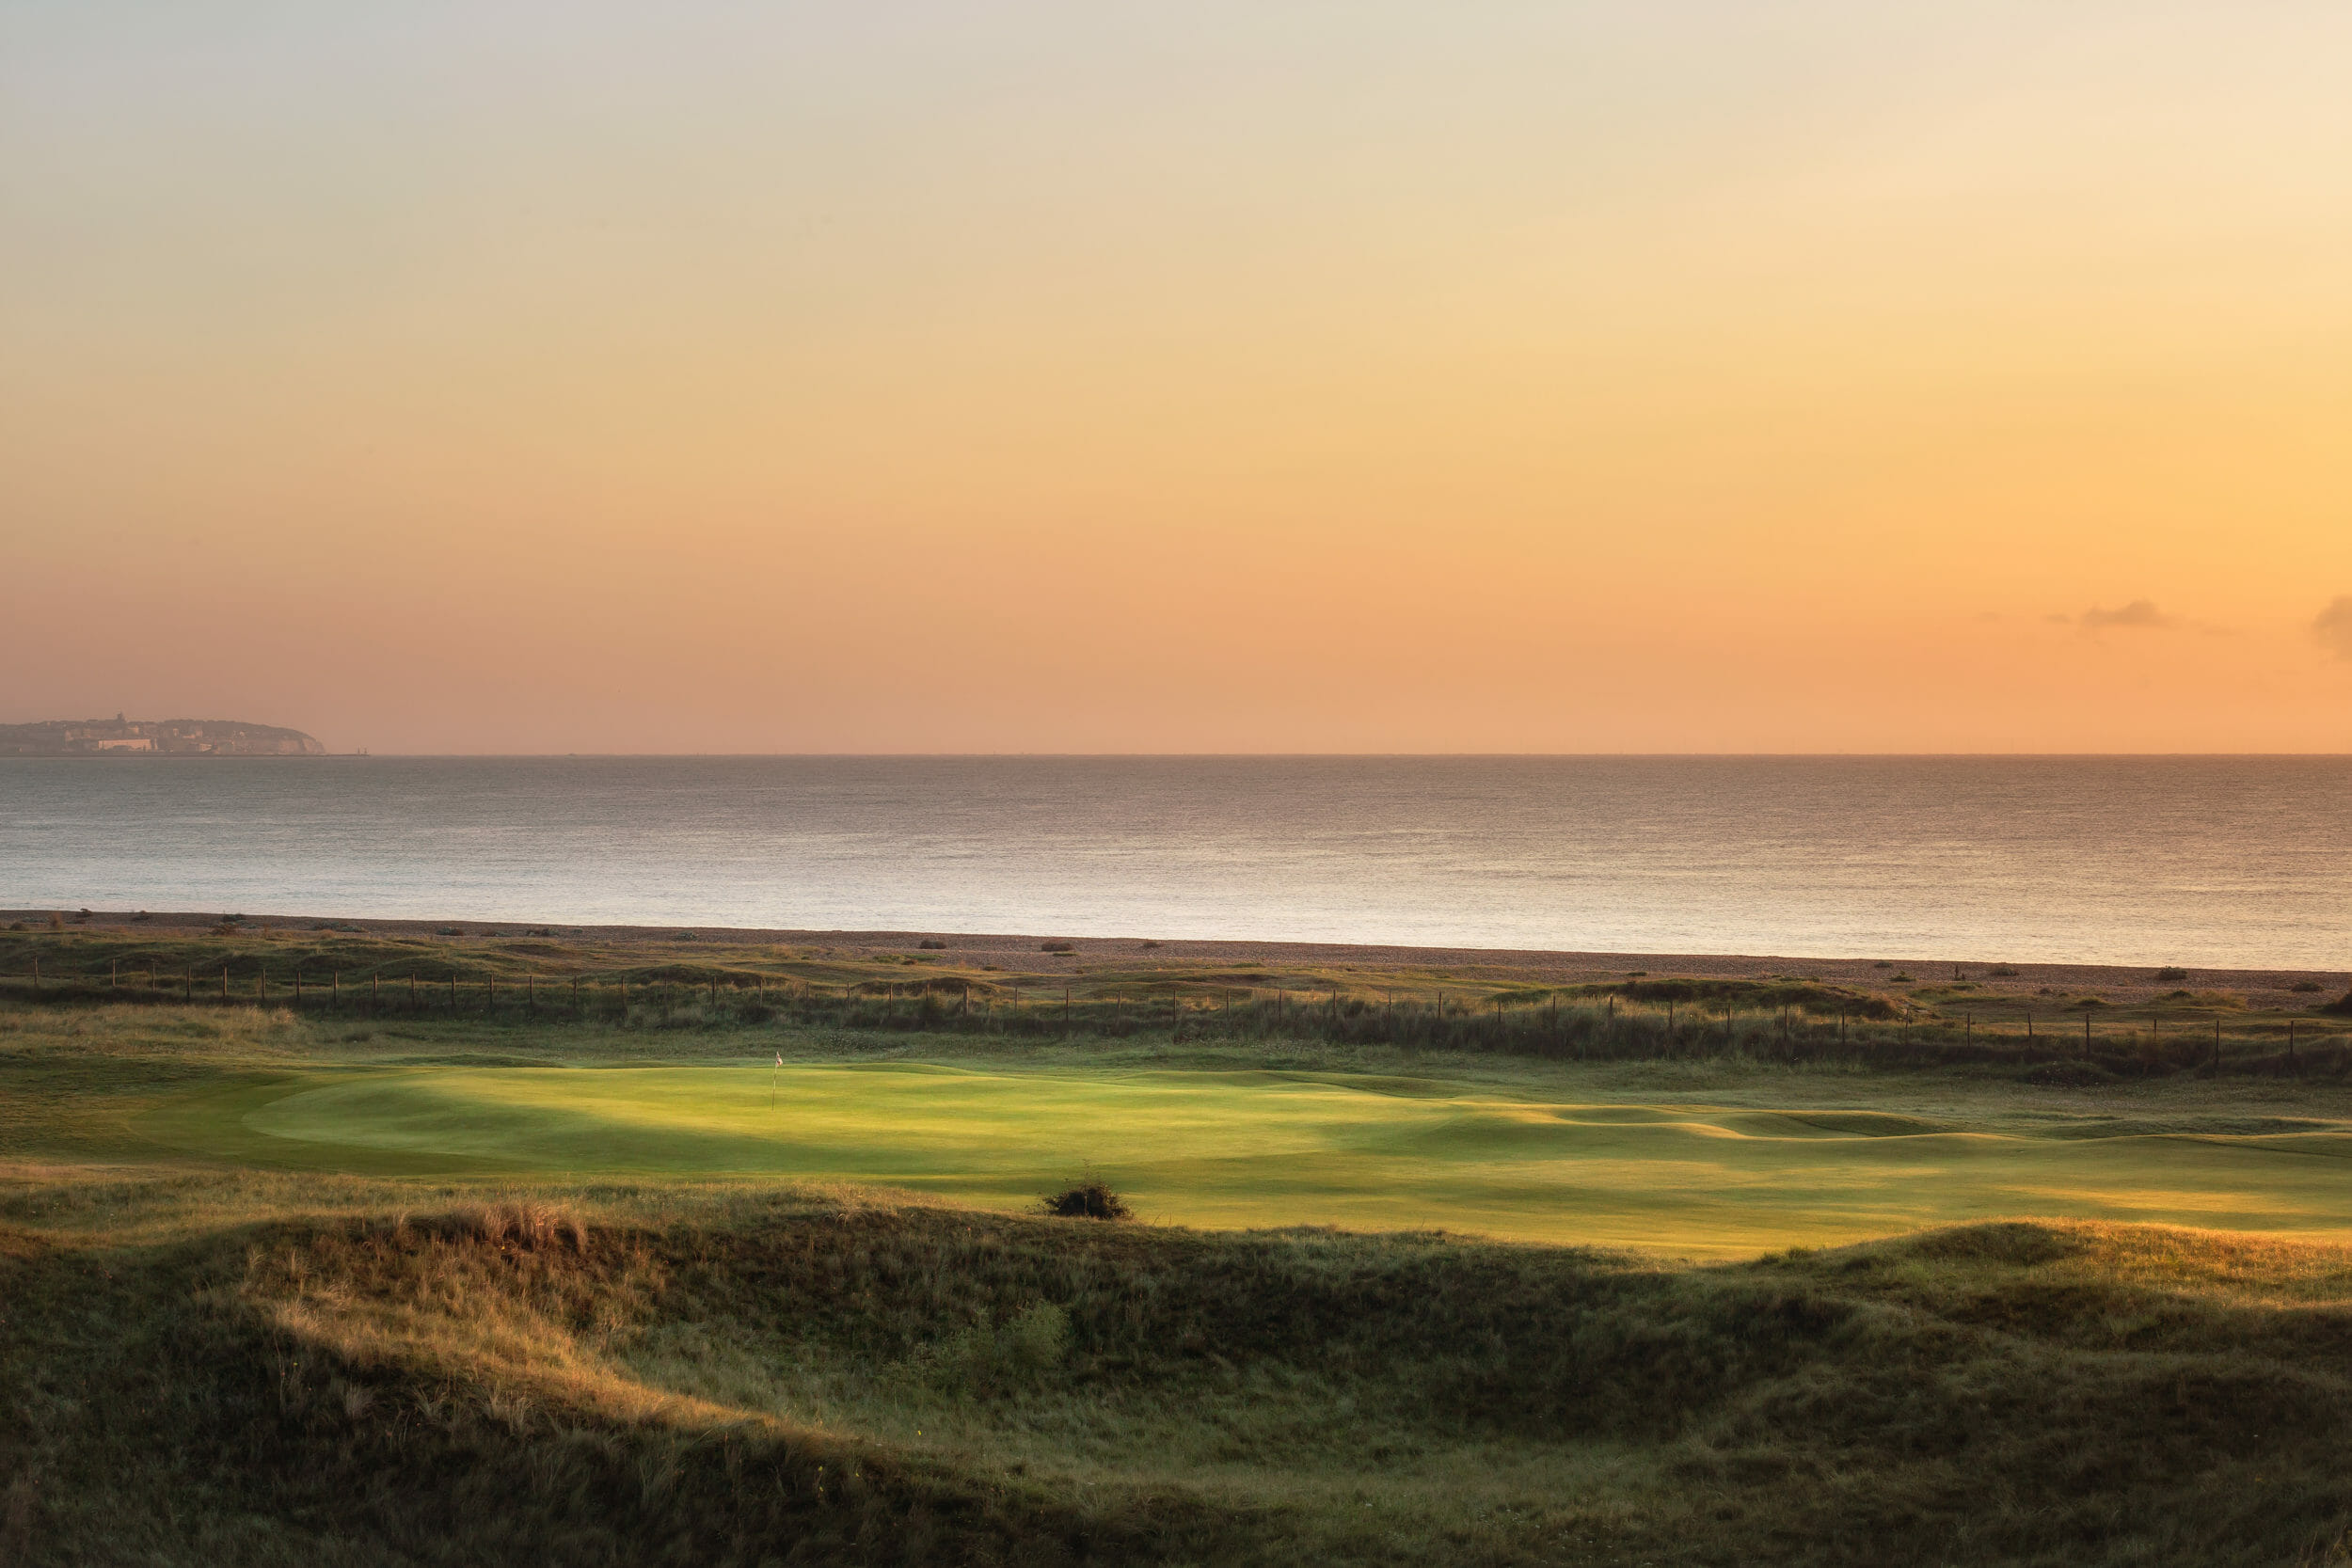 Image of the 5th hole next to the sea at Royal St George's Golf Club